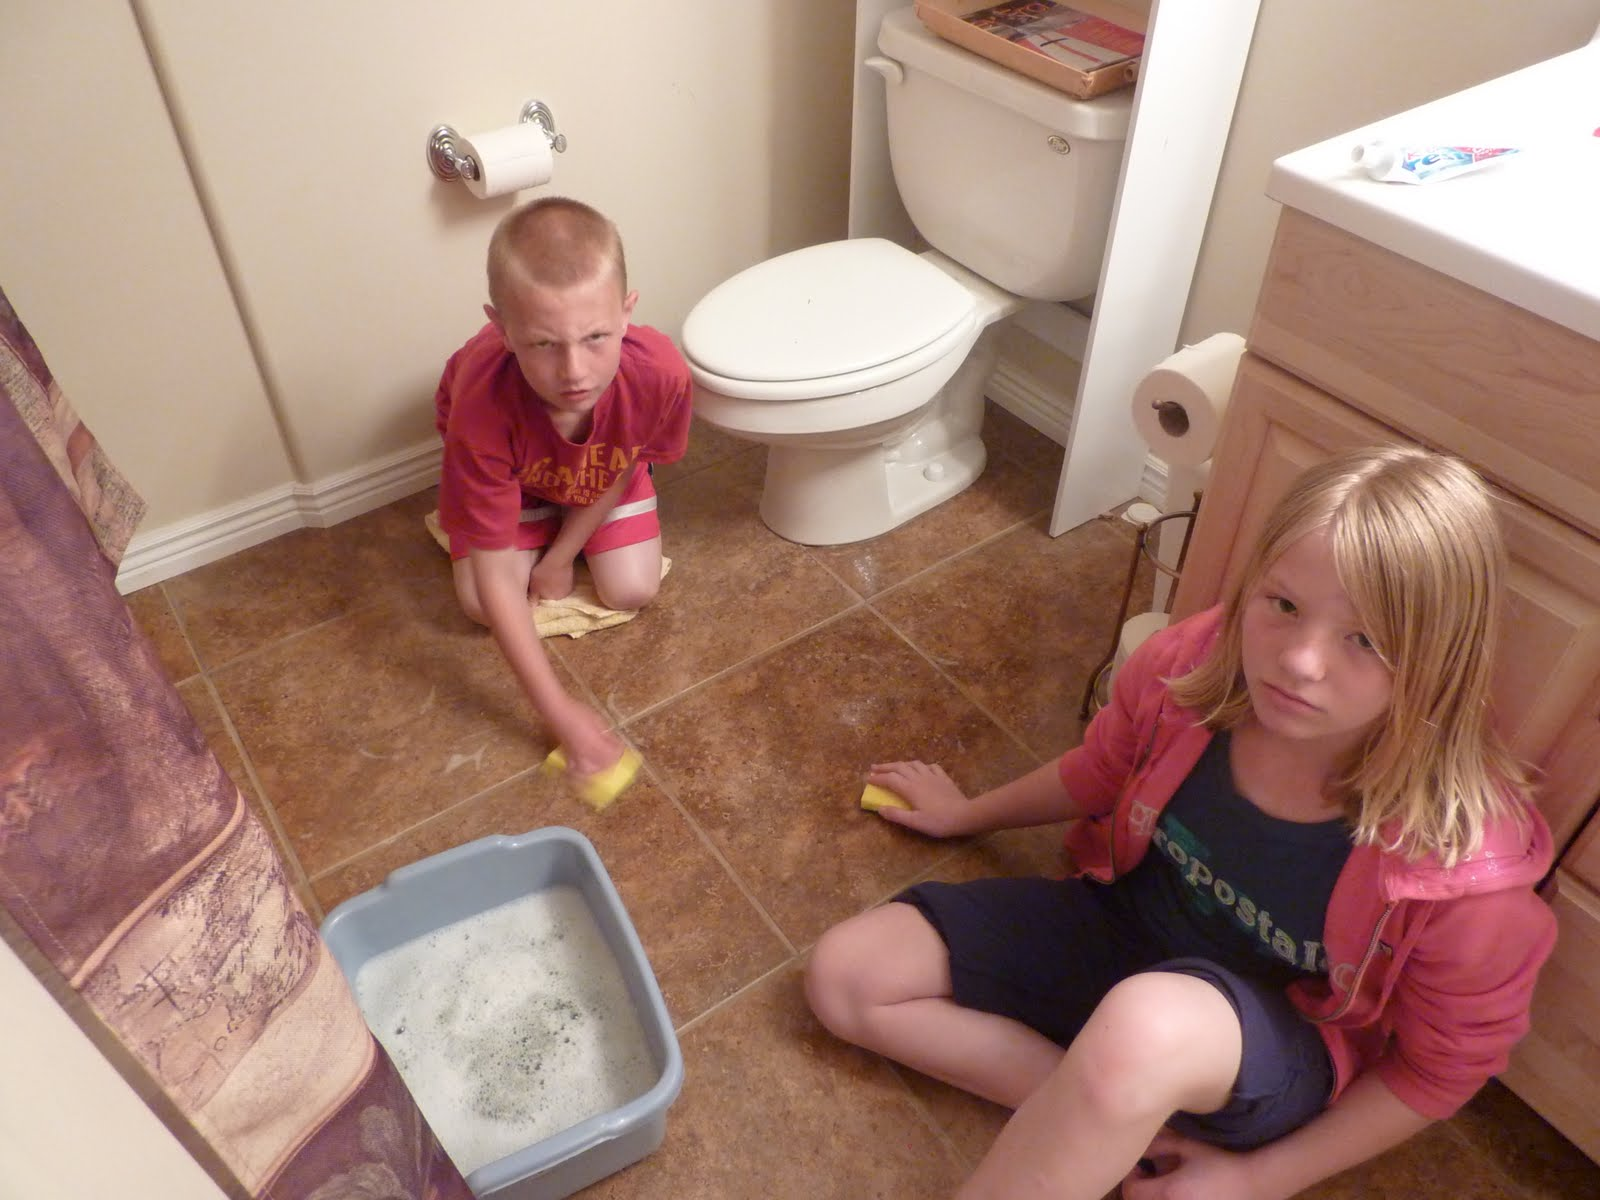 Kids Cleaning Room Now don't call child service